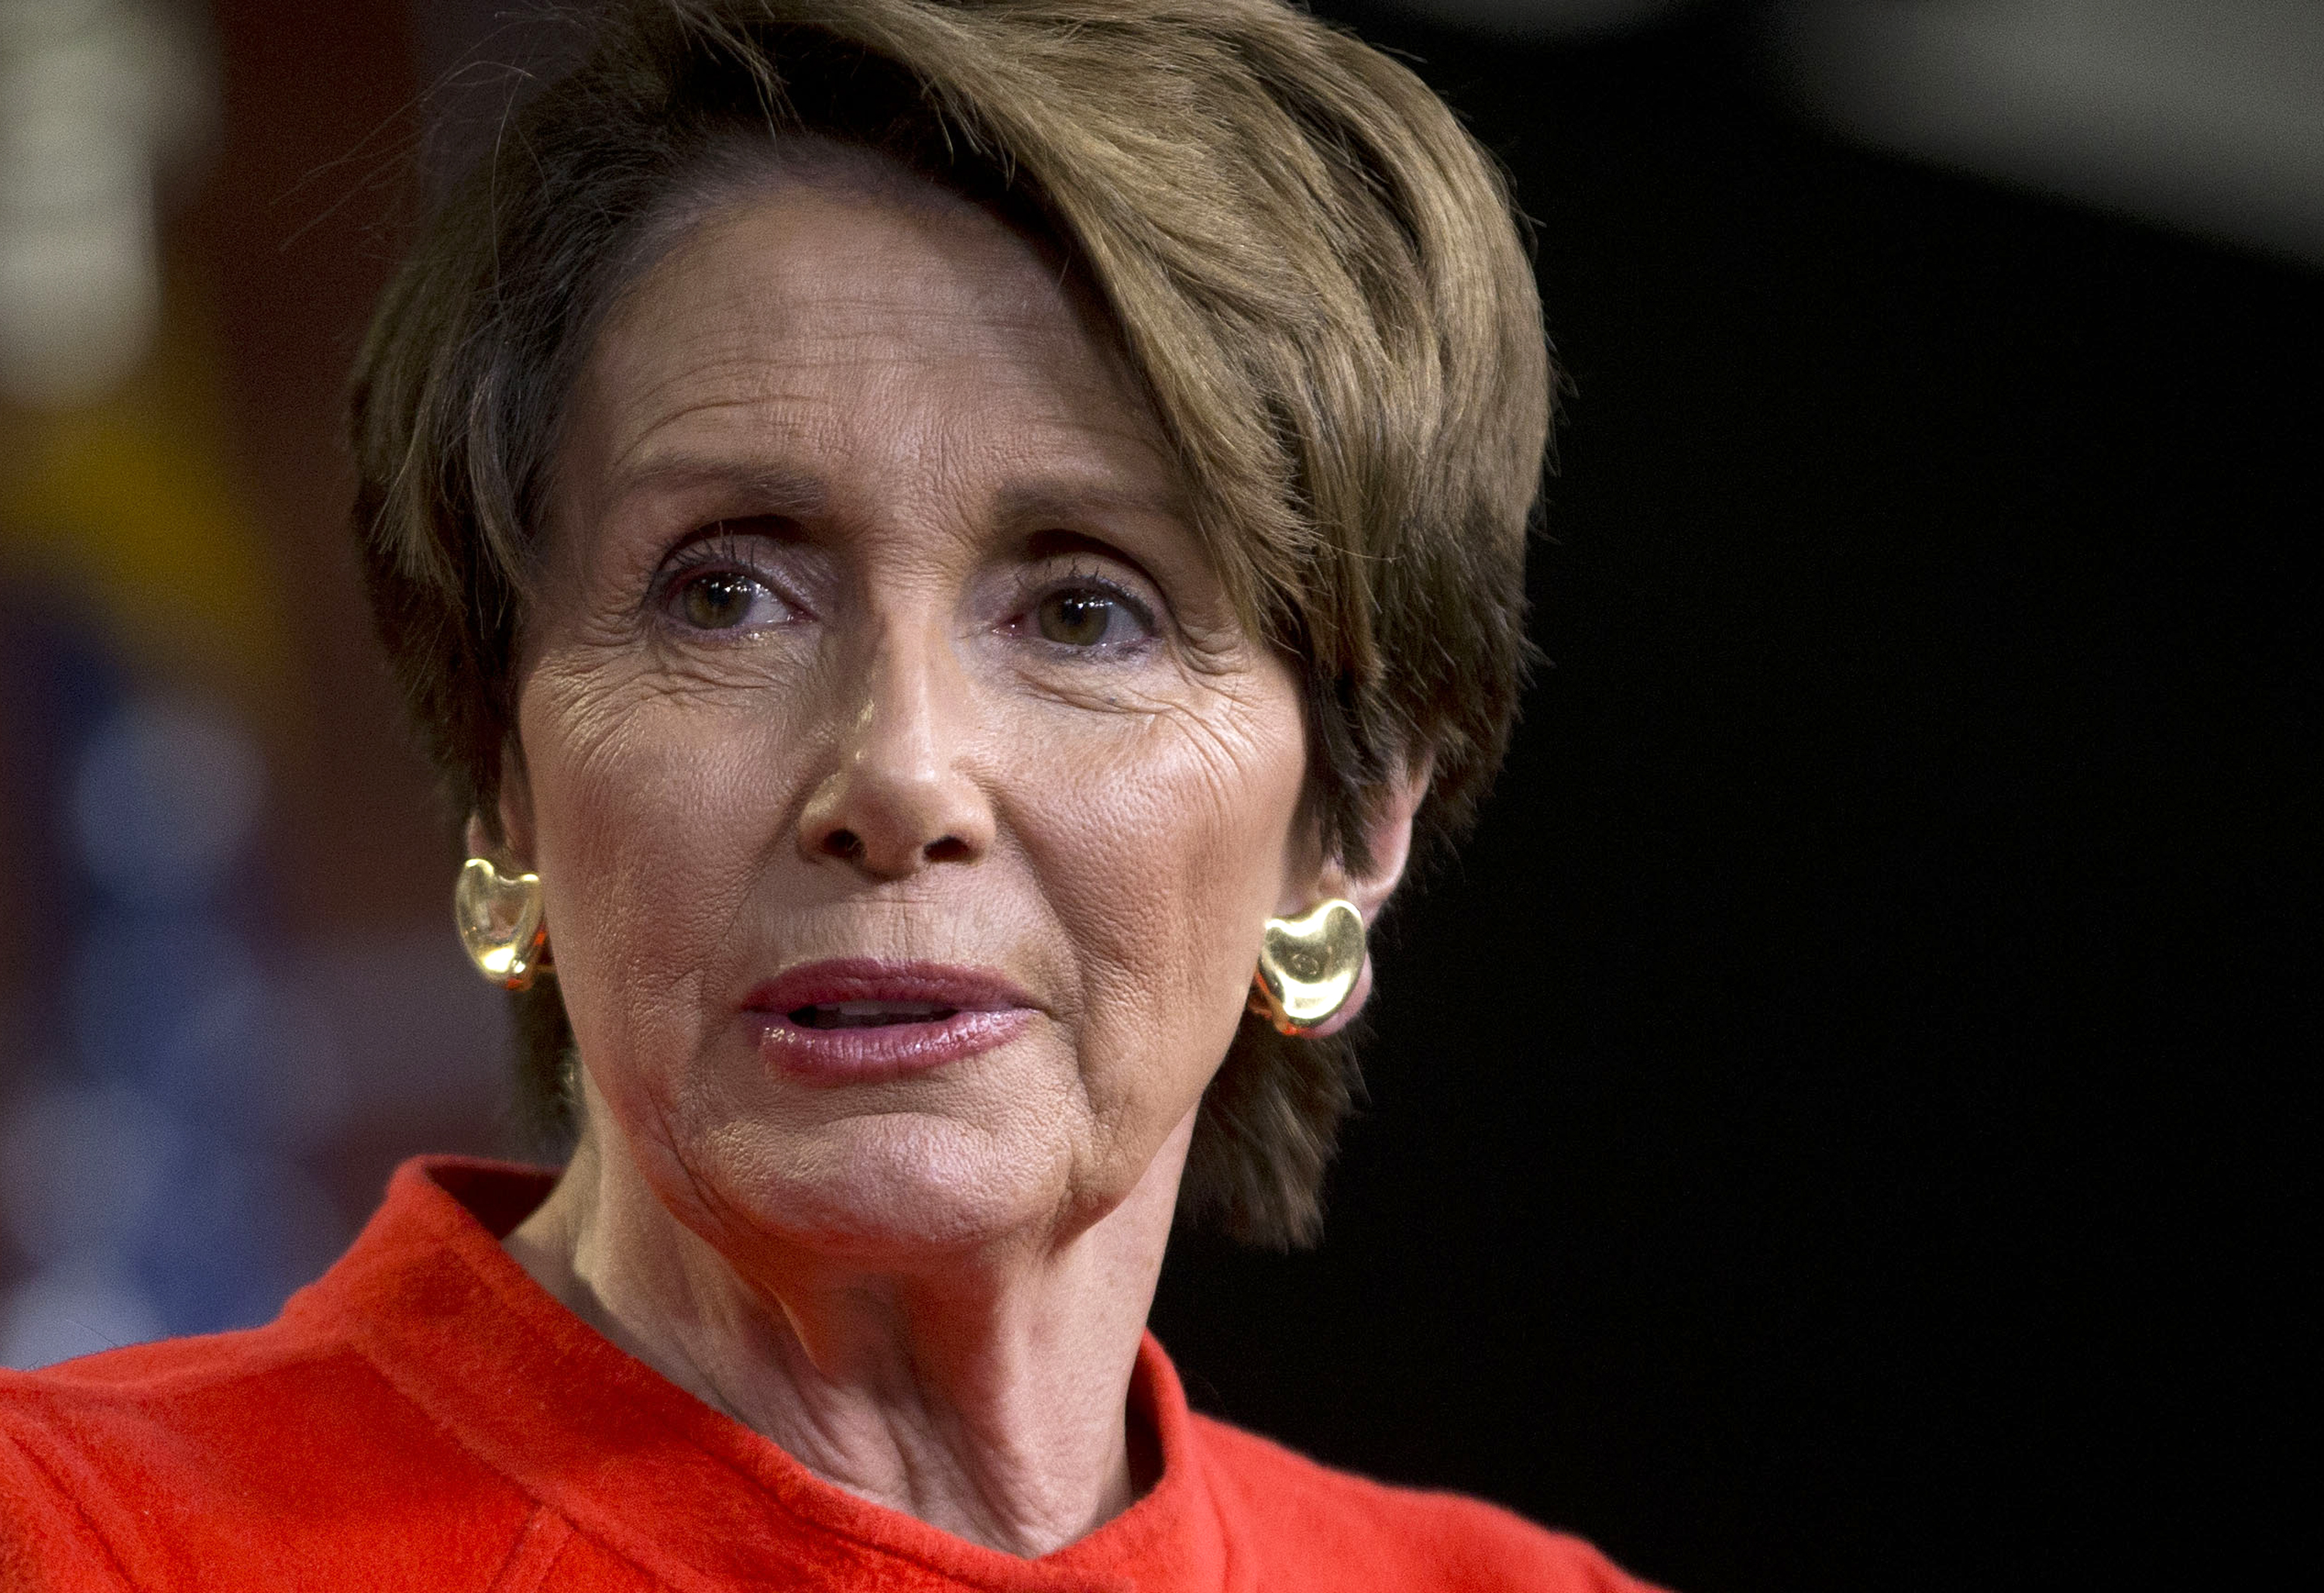 House Minority Leader Nancy Pelosi meets with reporters on Capitol Hill in Washington, D.C. on Jan. 29, 2014.